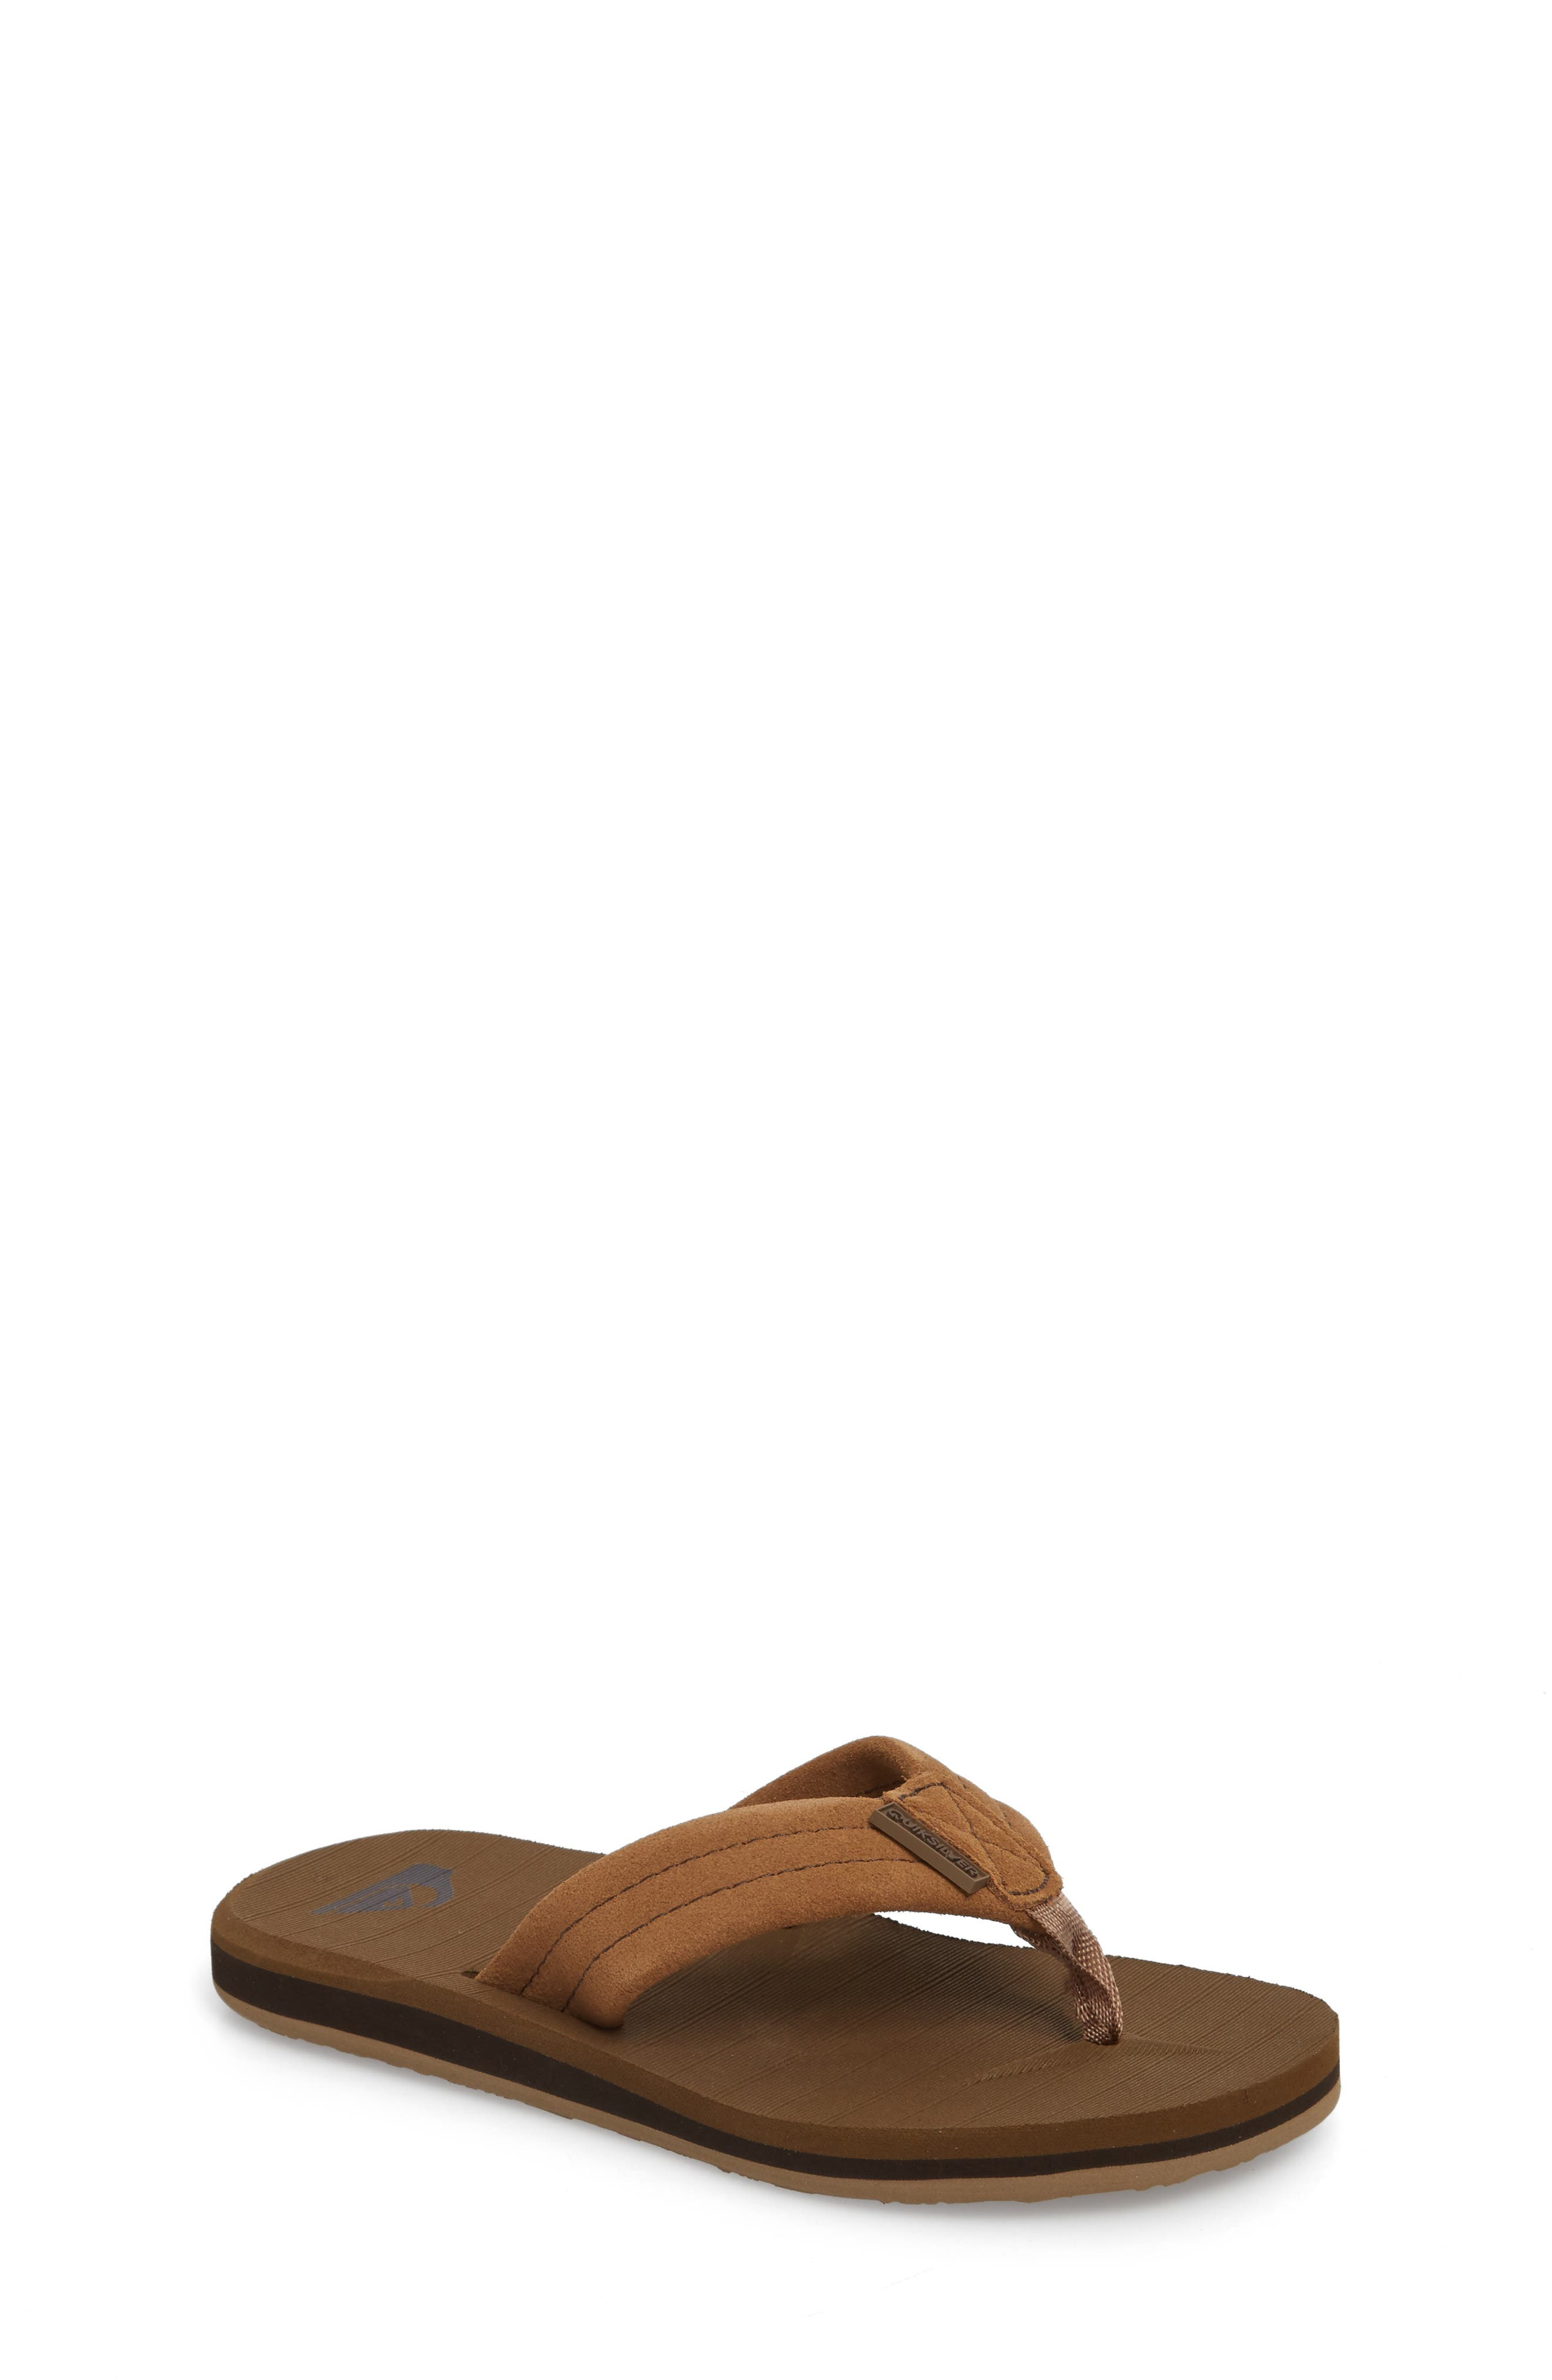 Carver Flip Flop,                         Main,                         color, TAN